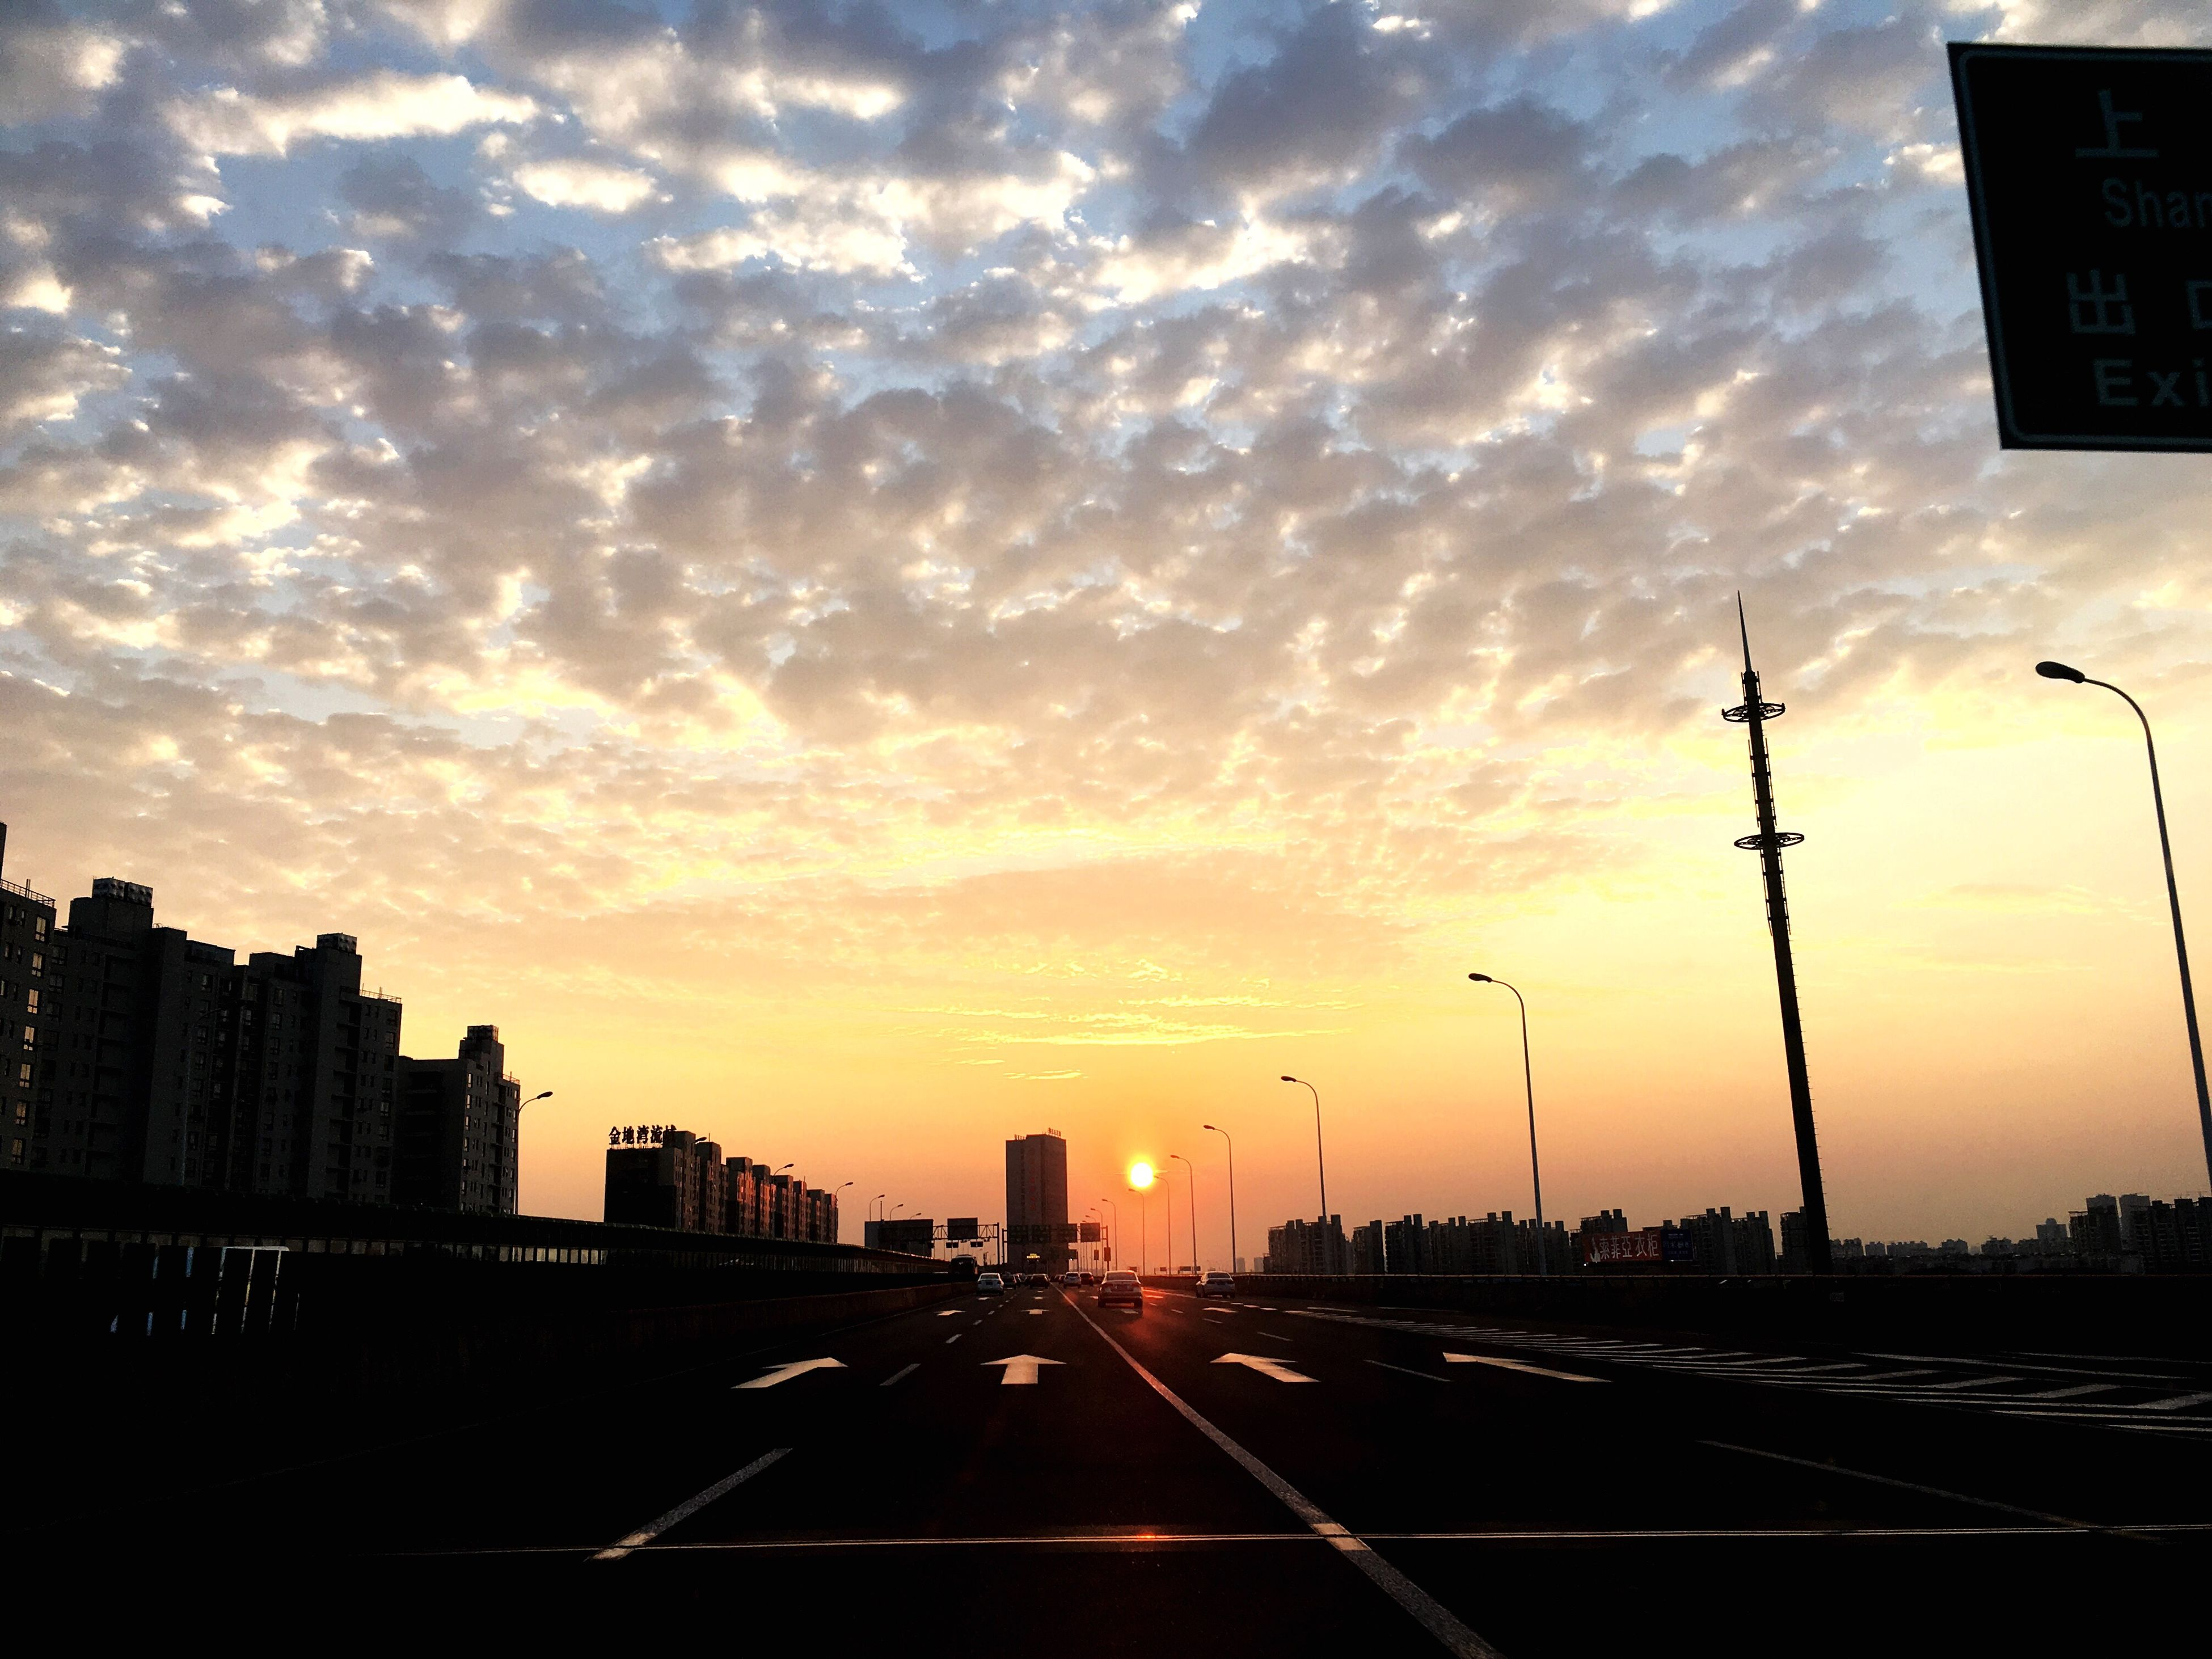 sunset, transportation, building exterior, city, sky, architecture, built structure, road, silhouette, cloud - sky, car, orange color, street, street light, the way forward, land vehicle, traffic, road marking, mode of transport, cloud